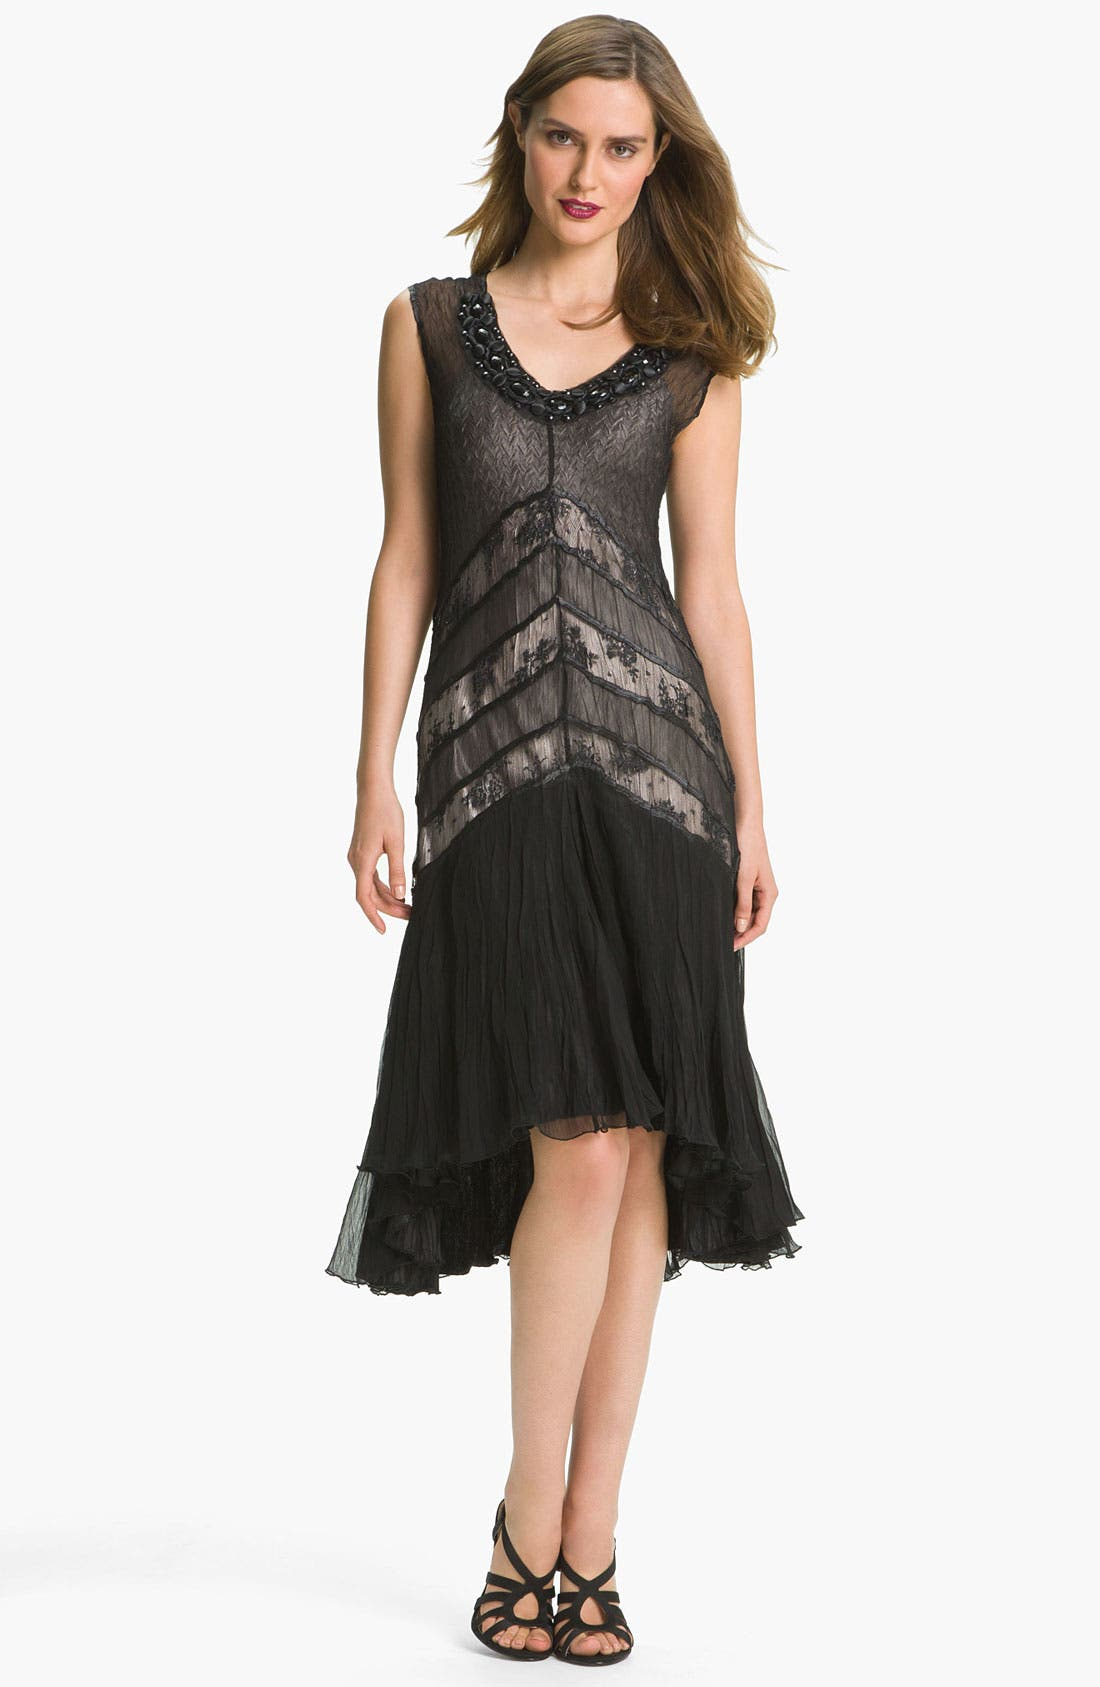 Alternate Image 1 Selected - Black by Komarov Lace Panel High/Low Chiffon Dress